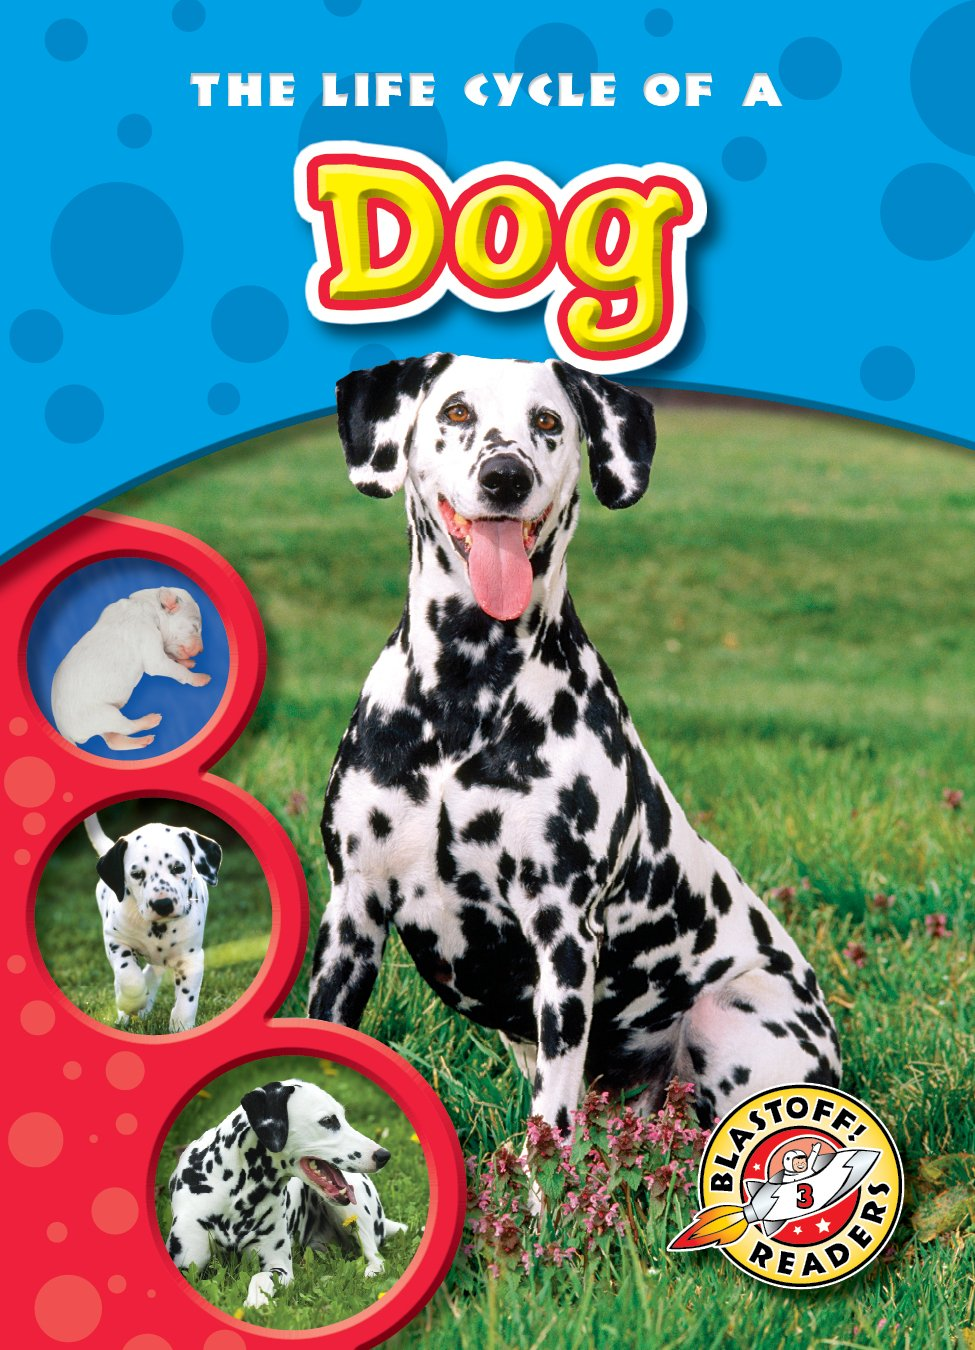 Life Cycle of a Dog, The (Blastoff! Readers: Life Cycles) (Life Cycles: Blastoff Readers, Level 3) pdf epub